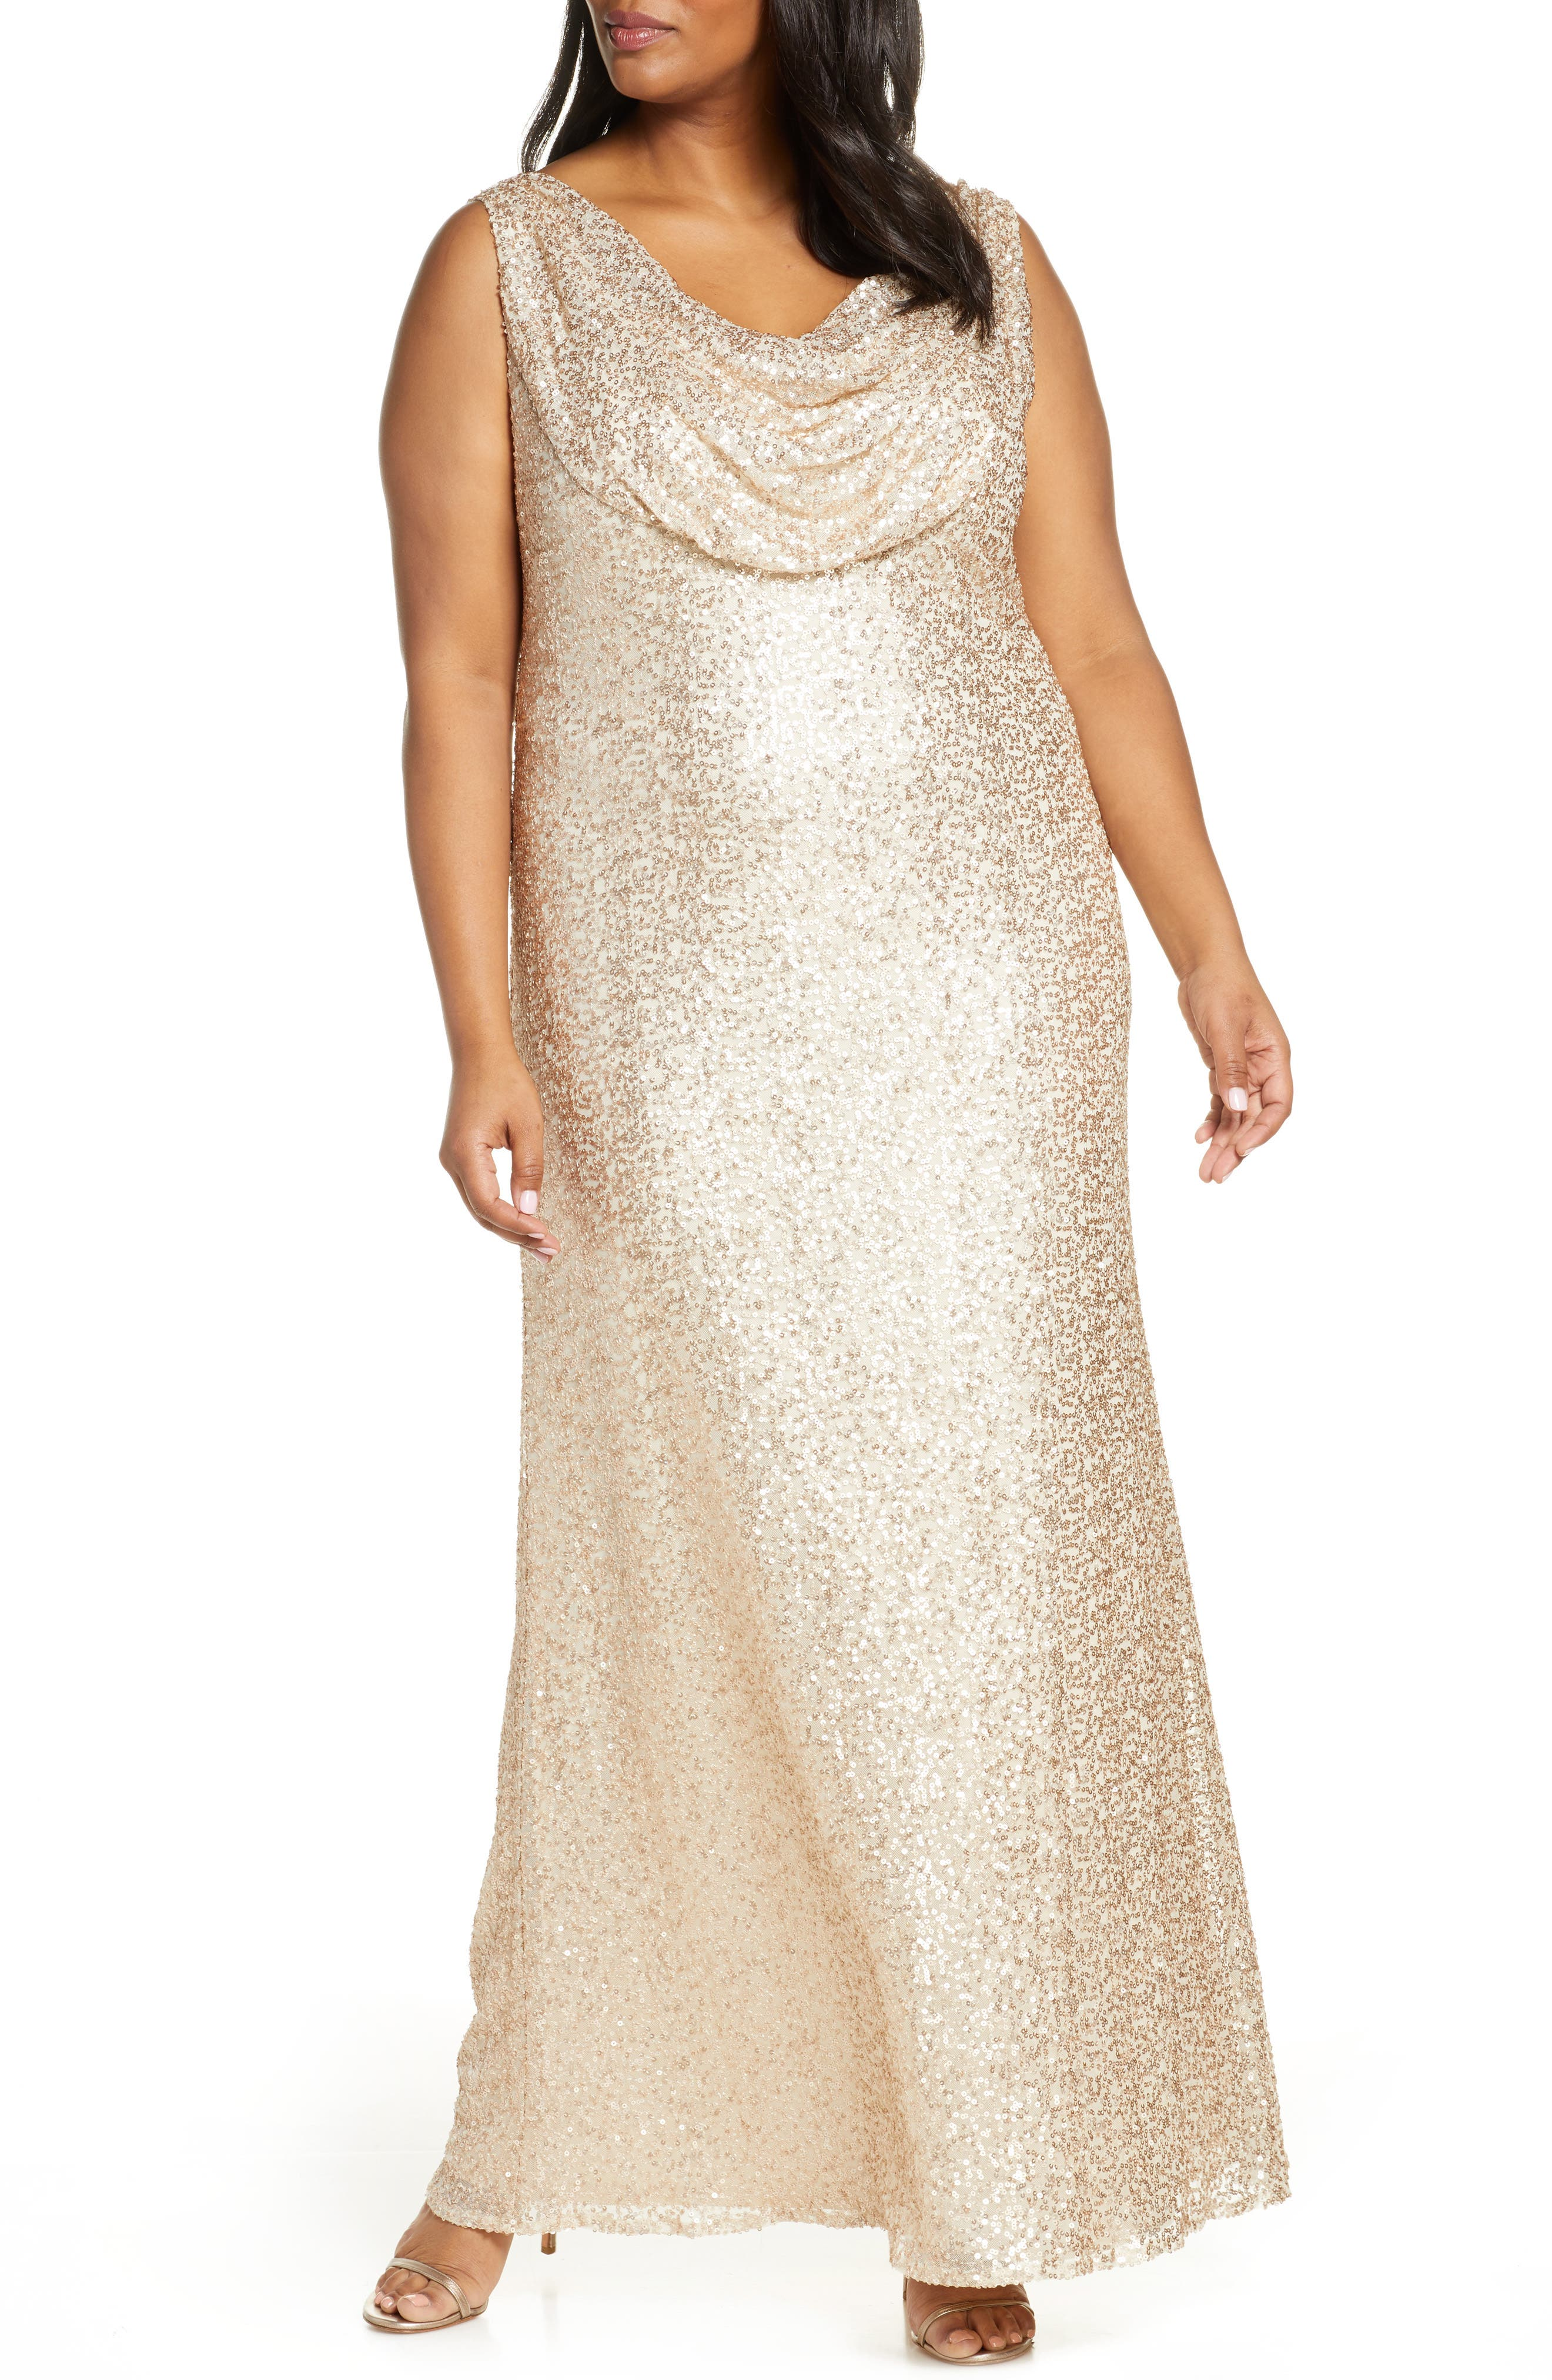 70s Prom, Formal, Evening, Party Dresses Plus Size Womens Vince Camuto Cowl Neck Sequin Gown $268.00 AT vintagedancer.com